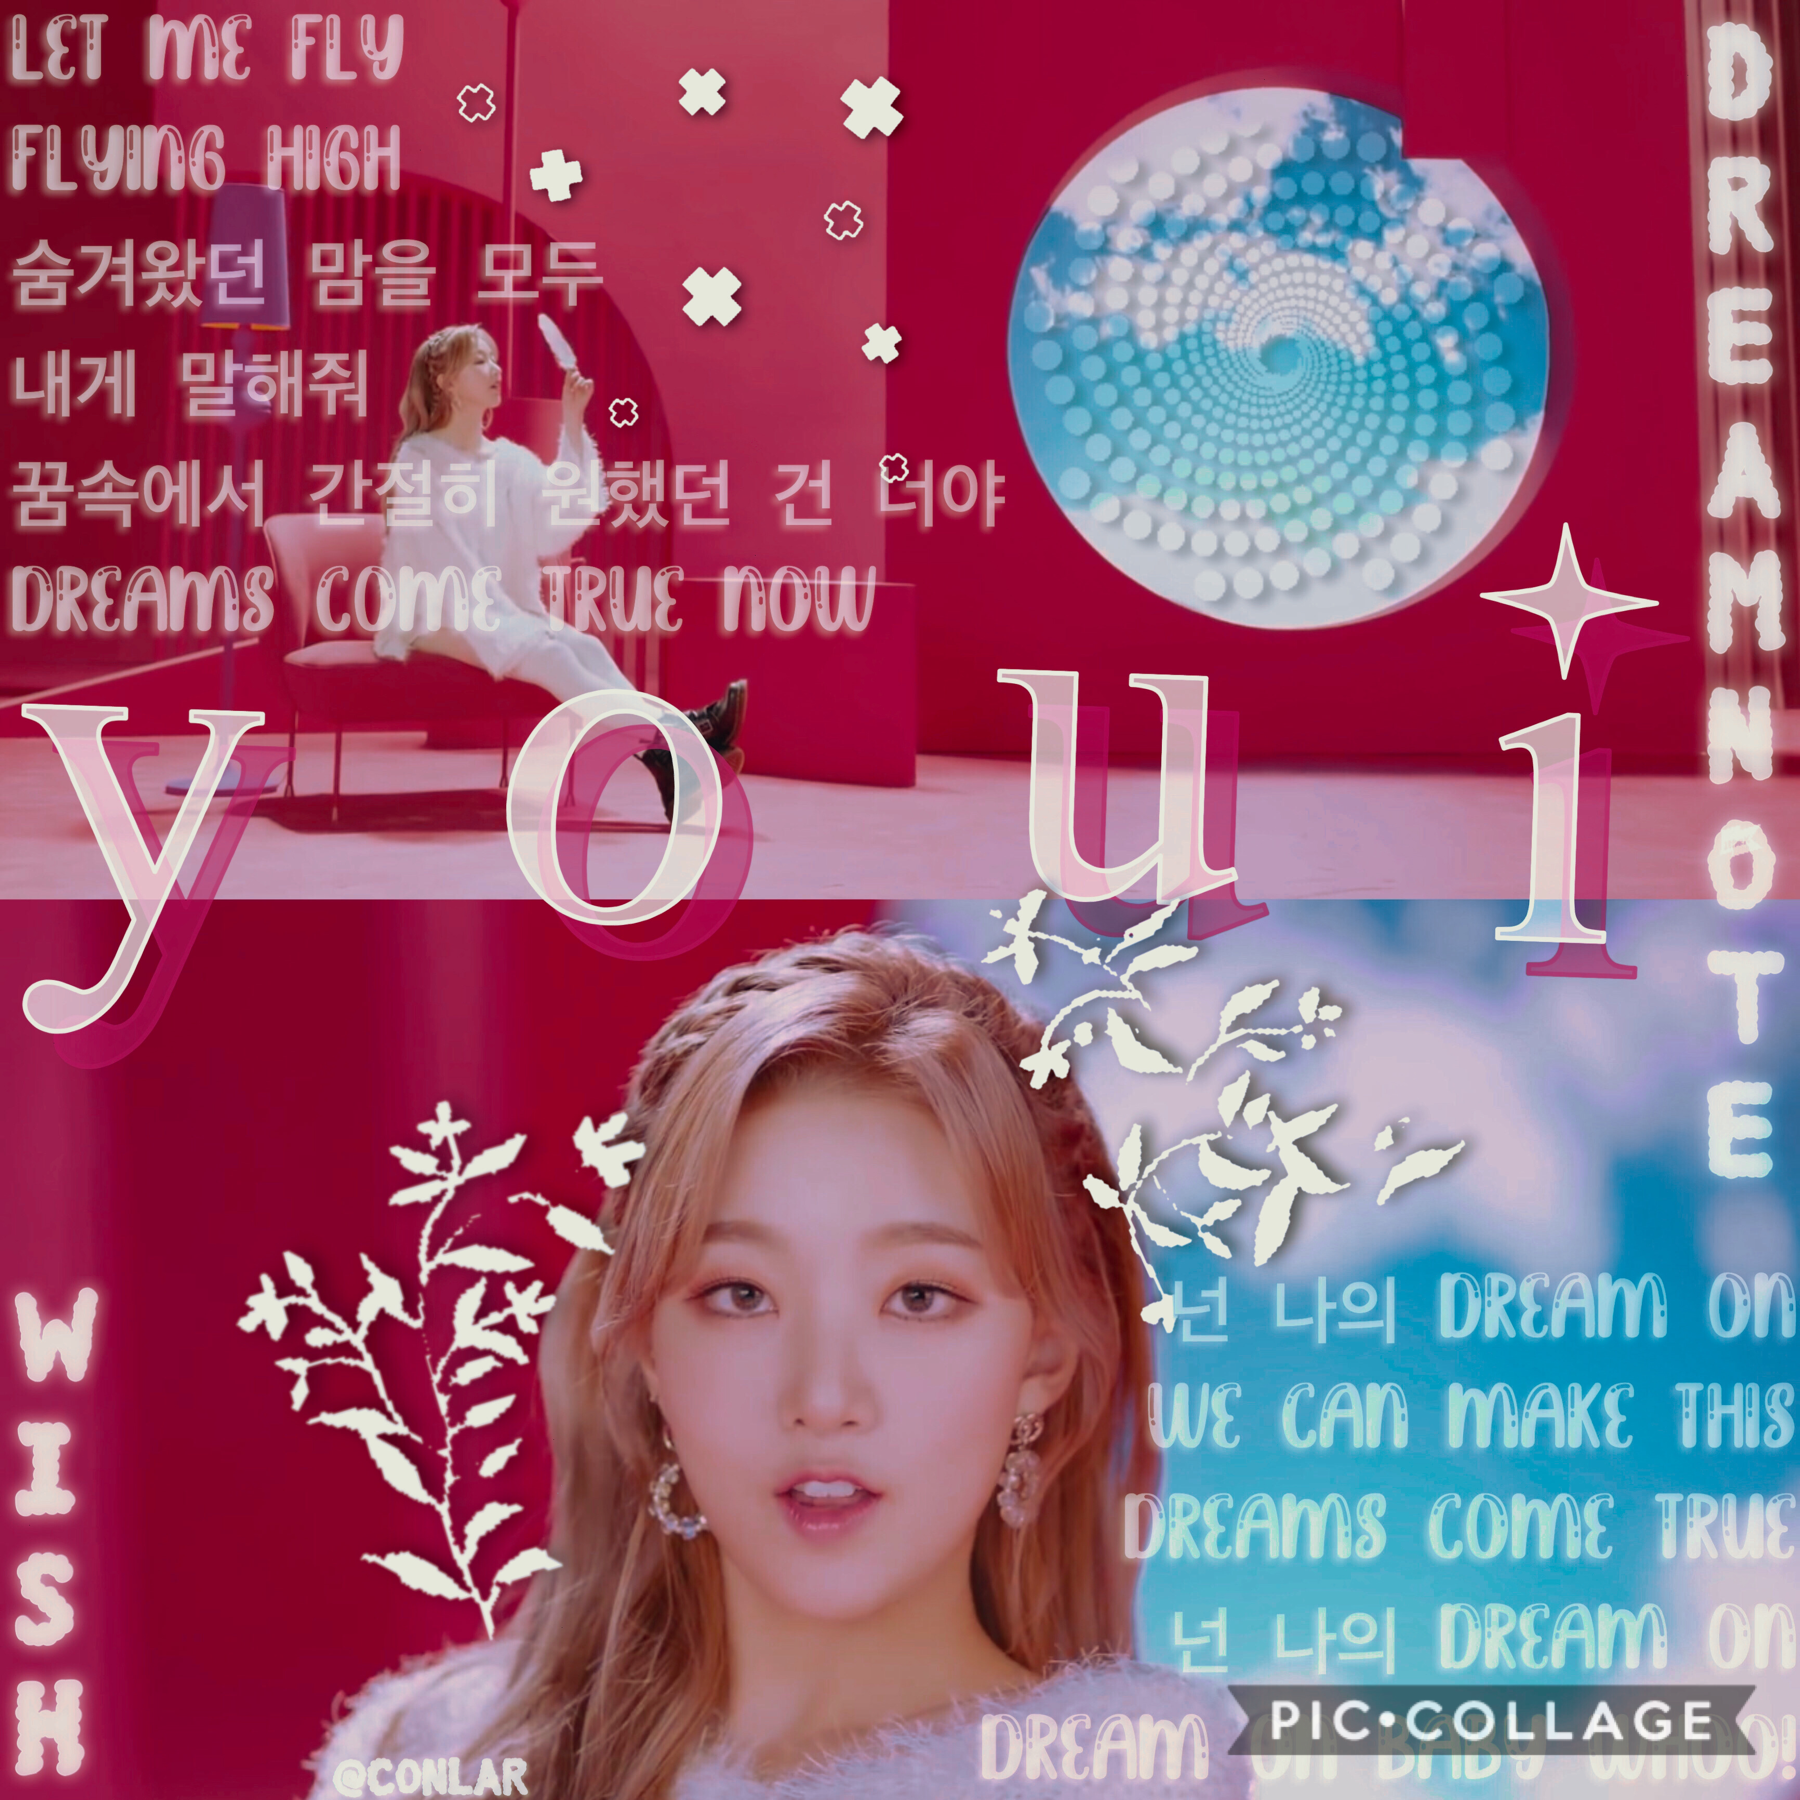 wOaH, TWO collages in ONE day  bro i'm really spoiling y'all  but if this looks bad it's last minute... so happy youi day everyone! today is youi from dreamnote's birthday ❤️  also how are y'all?